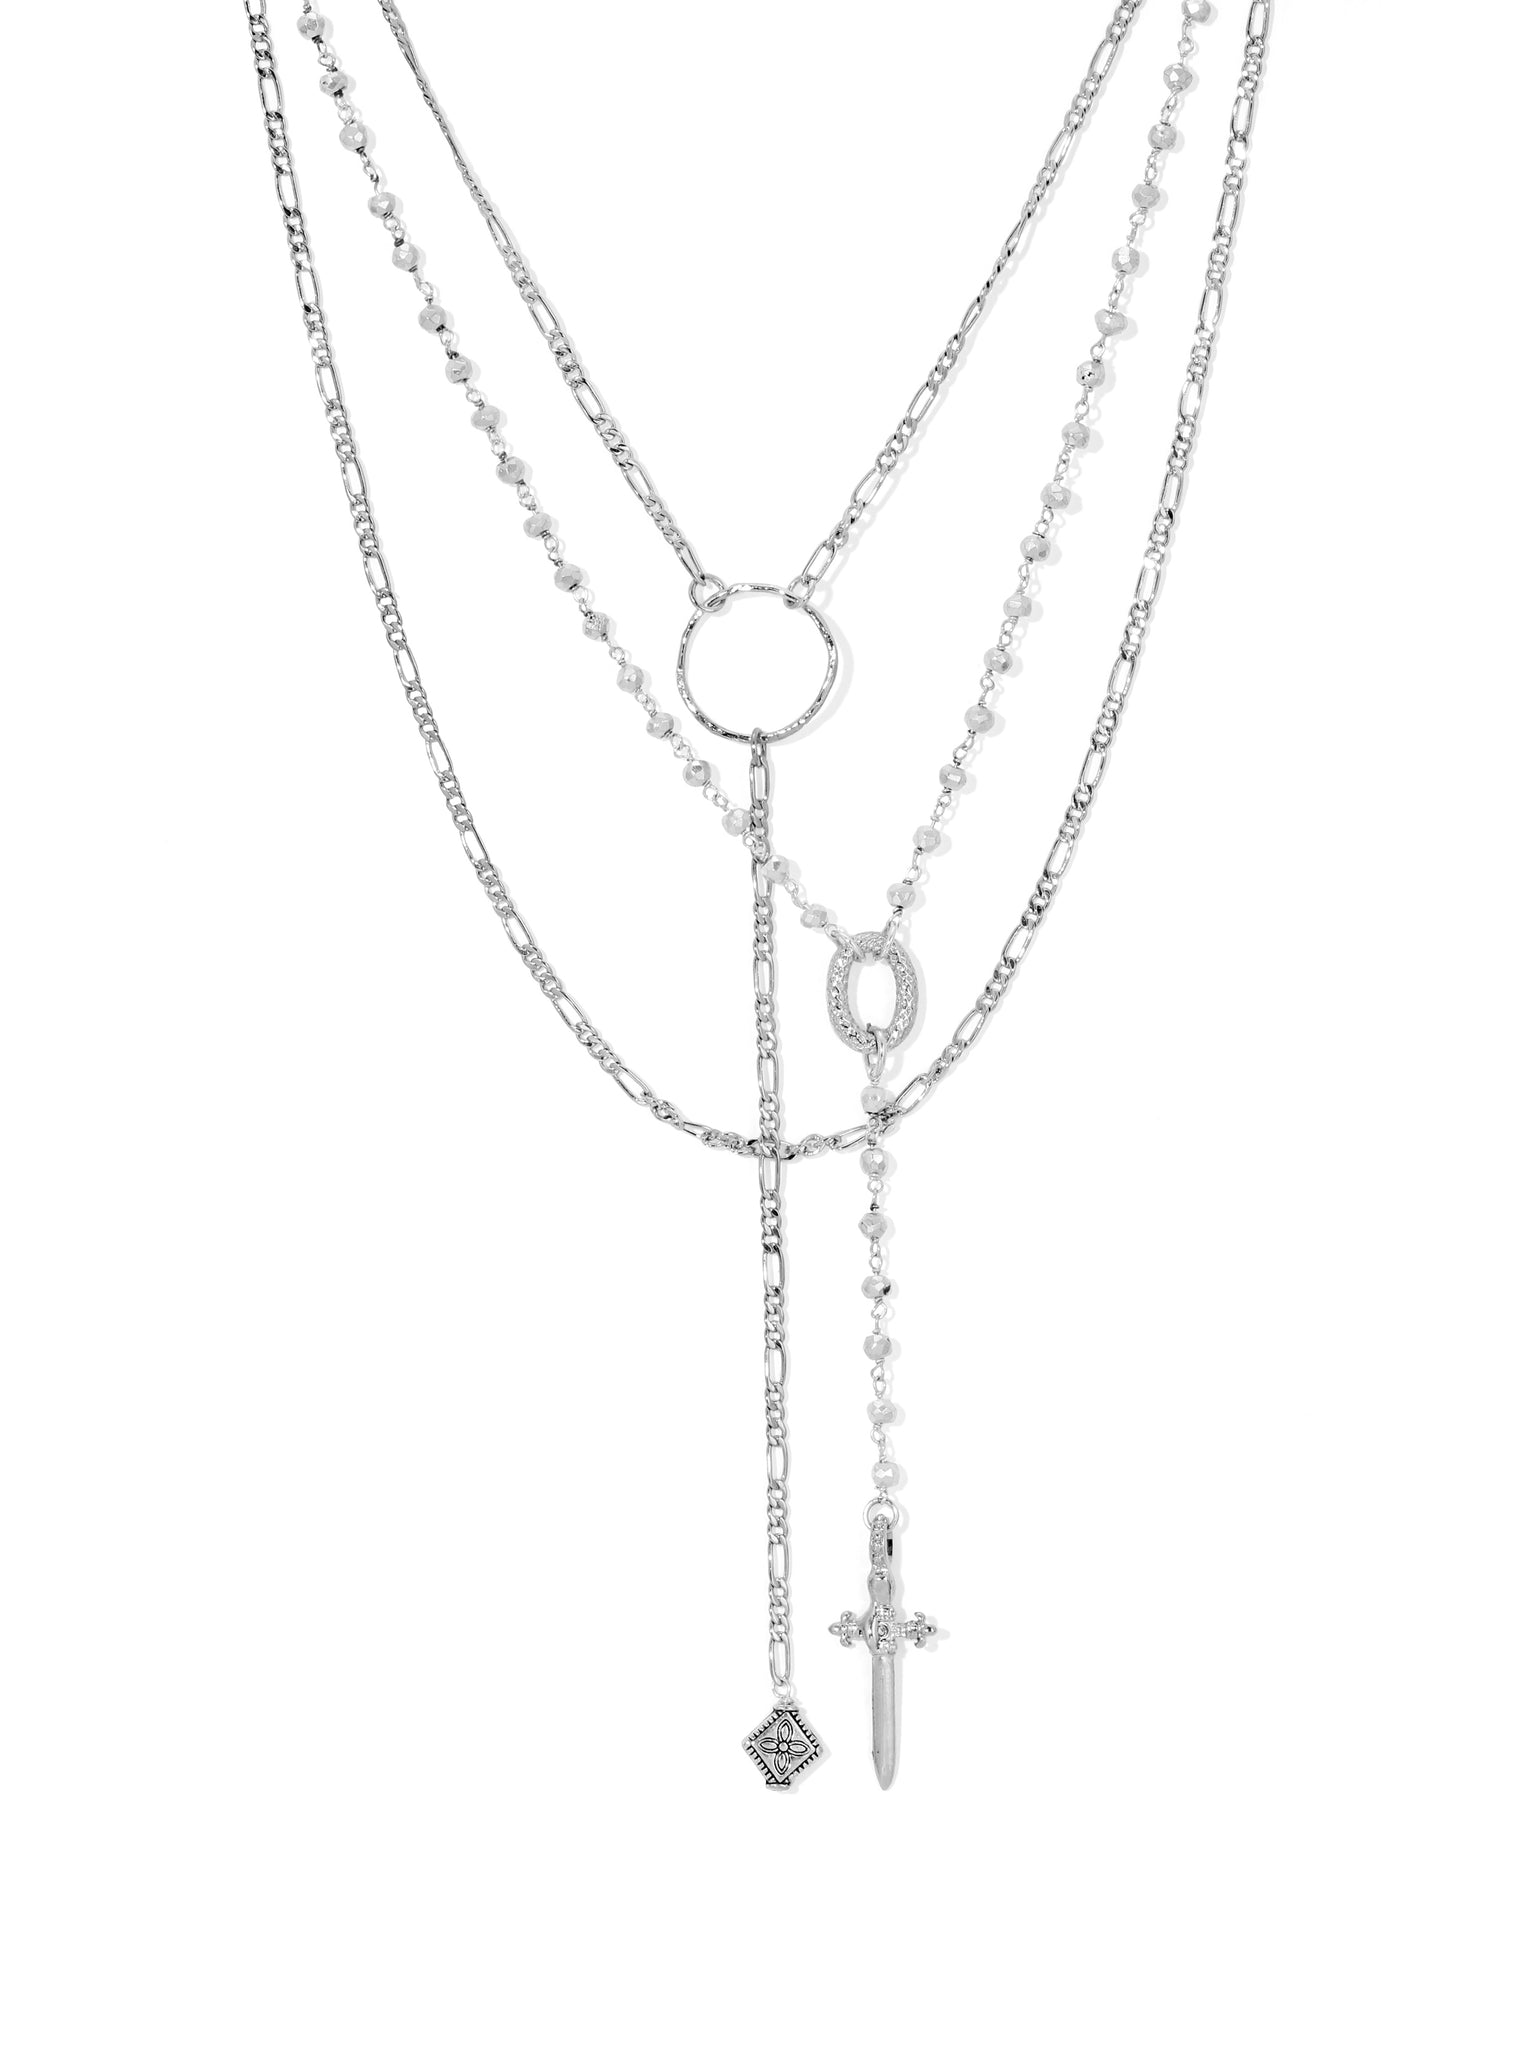 Necklaces The Hope Rosary Necklace – Silver Vanessa Mooney